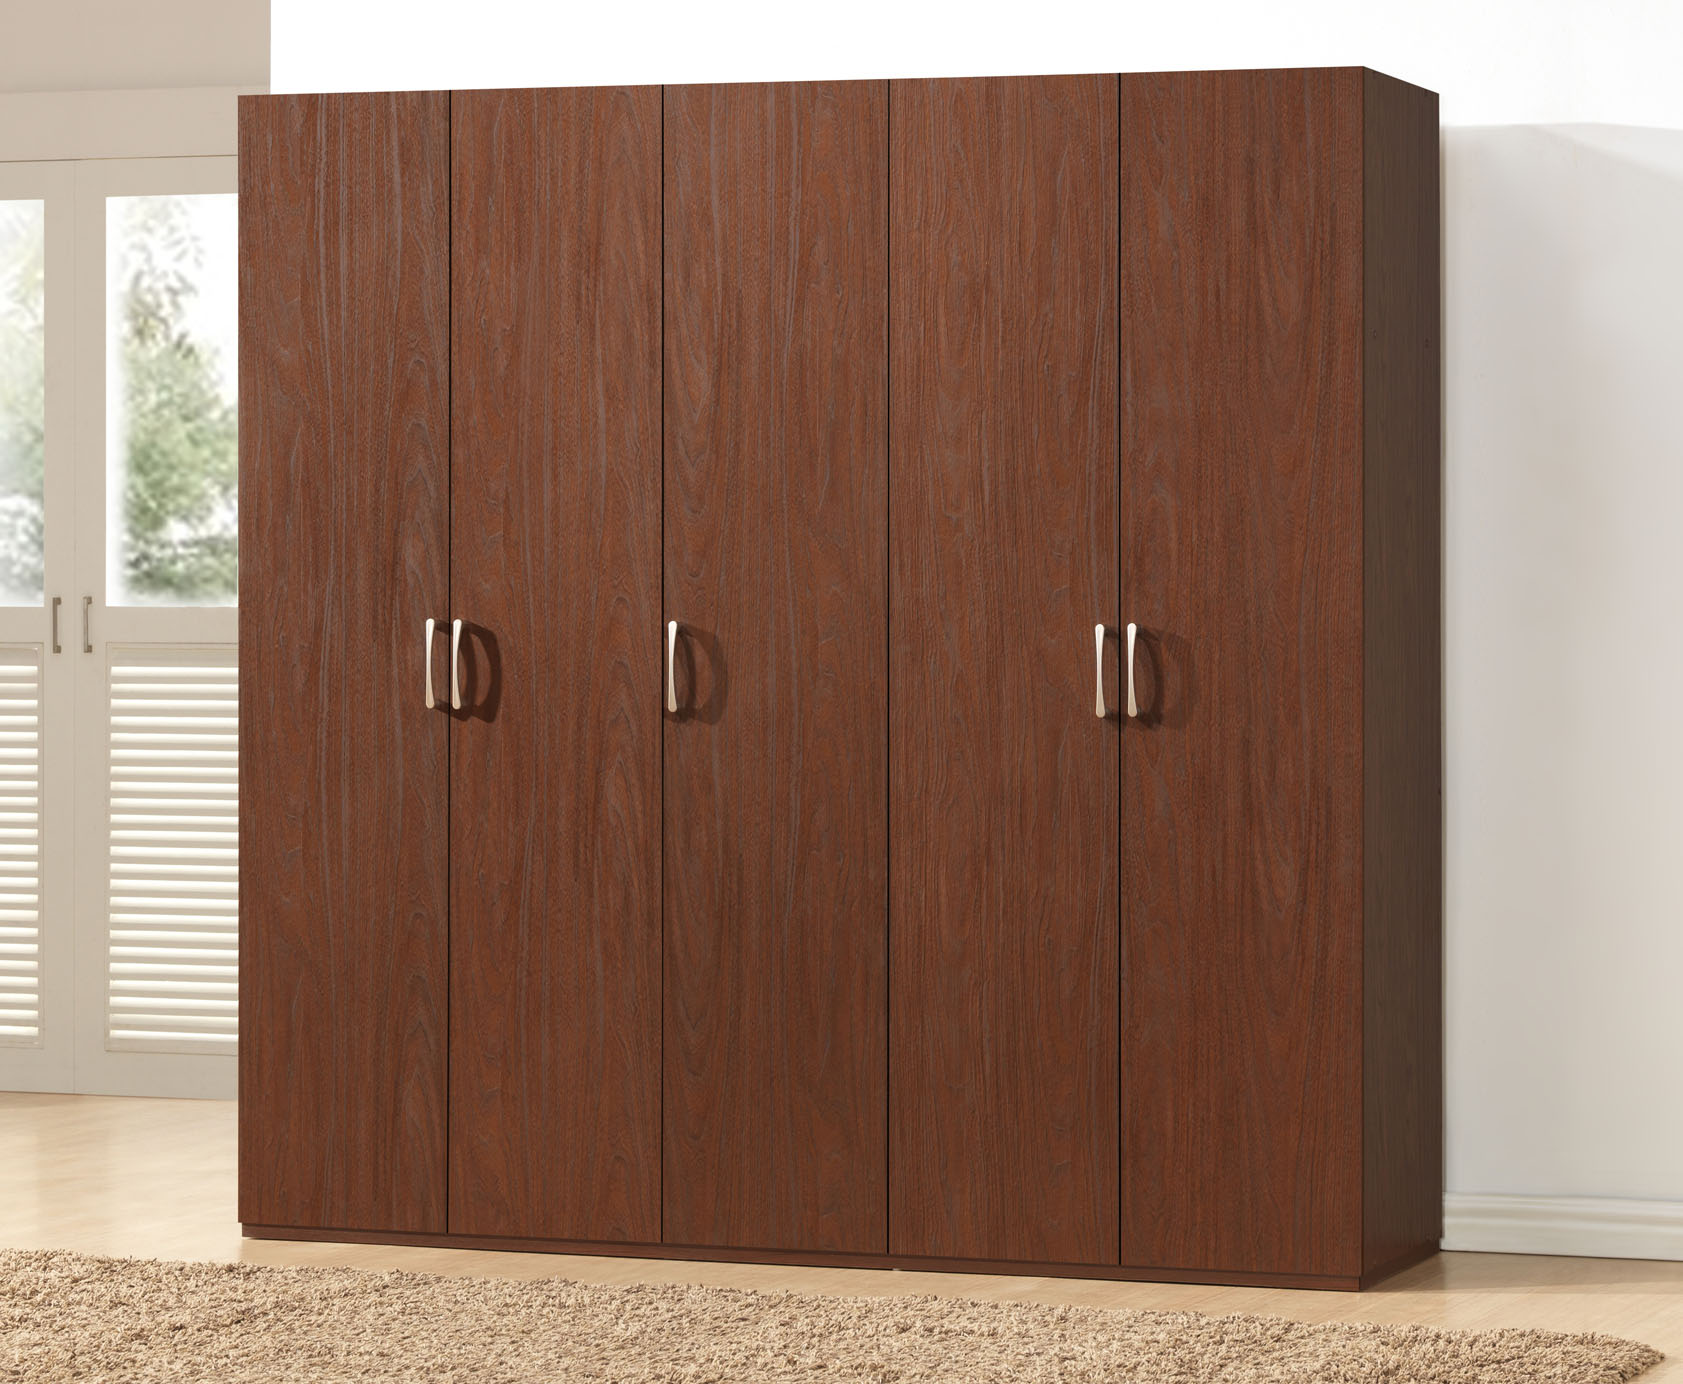 Furniture Manufacturer In Malaysia Wooden Furniture For A New Home Here Is Where You Get Them